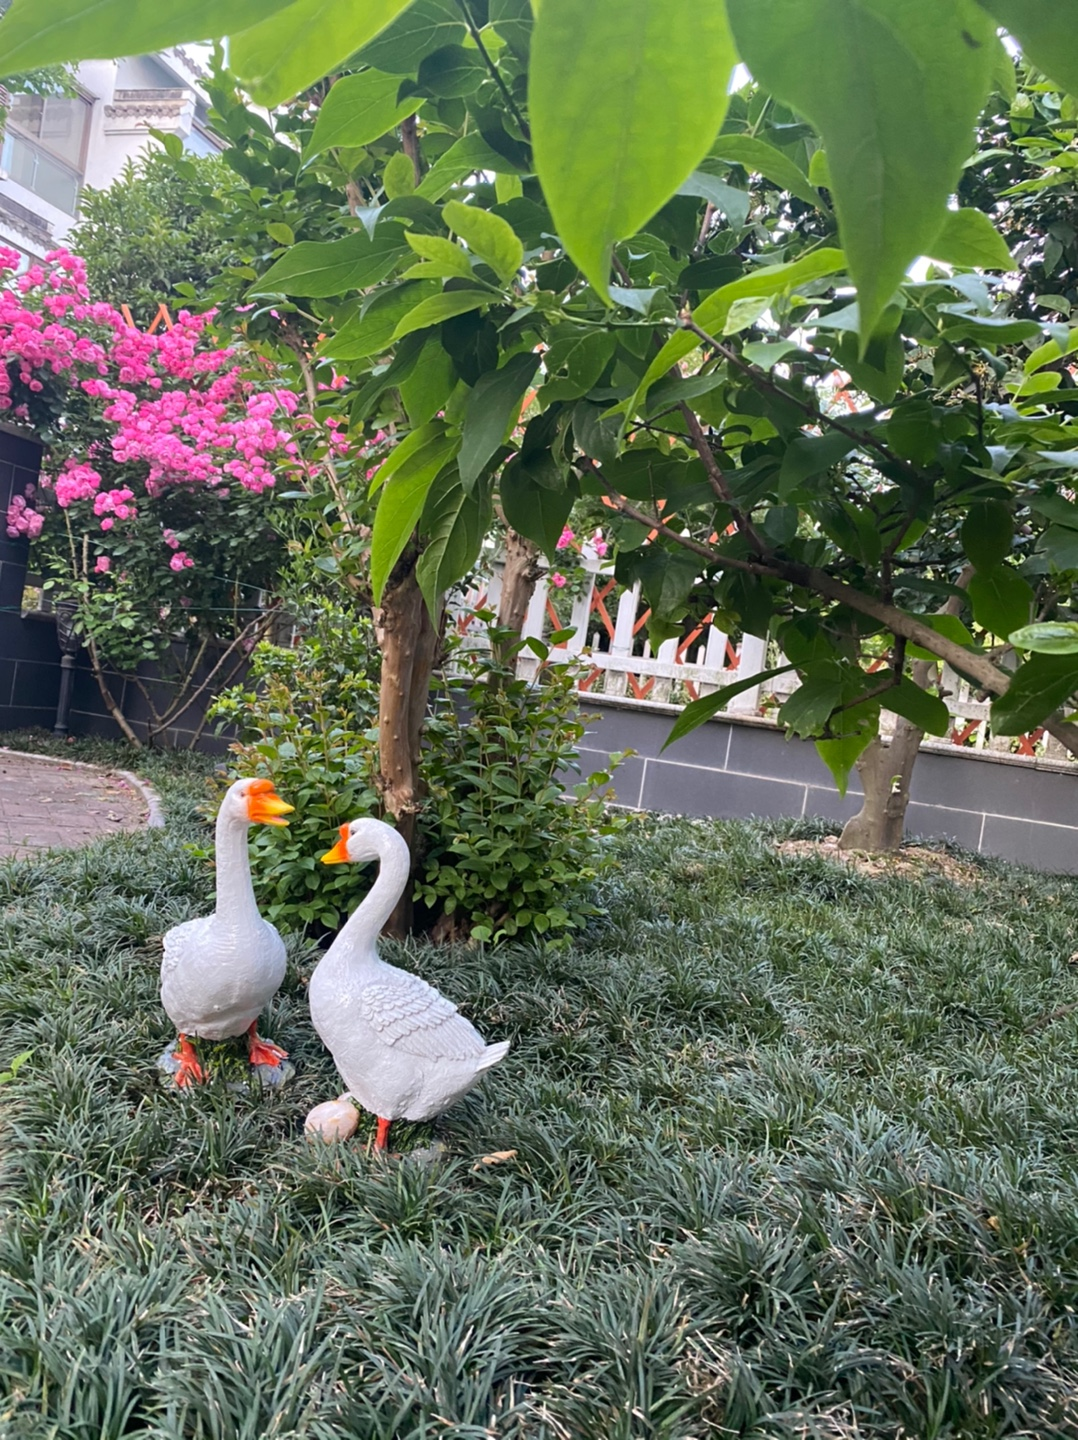 Simulation Swan Sculpture Lawn Garden Decor Decoration Outdoor Landscape Duck Statue Gardening Sculptures Resin Animal Craft